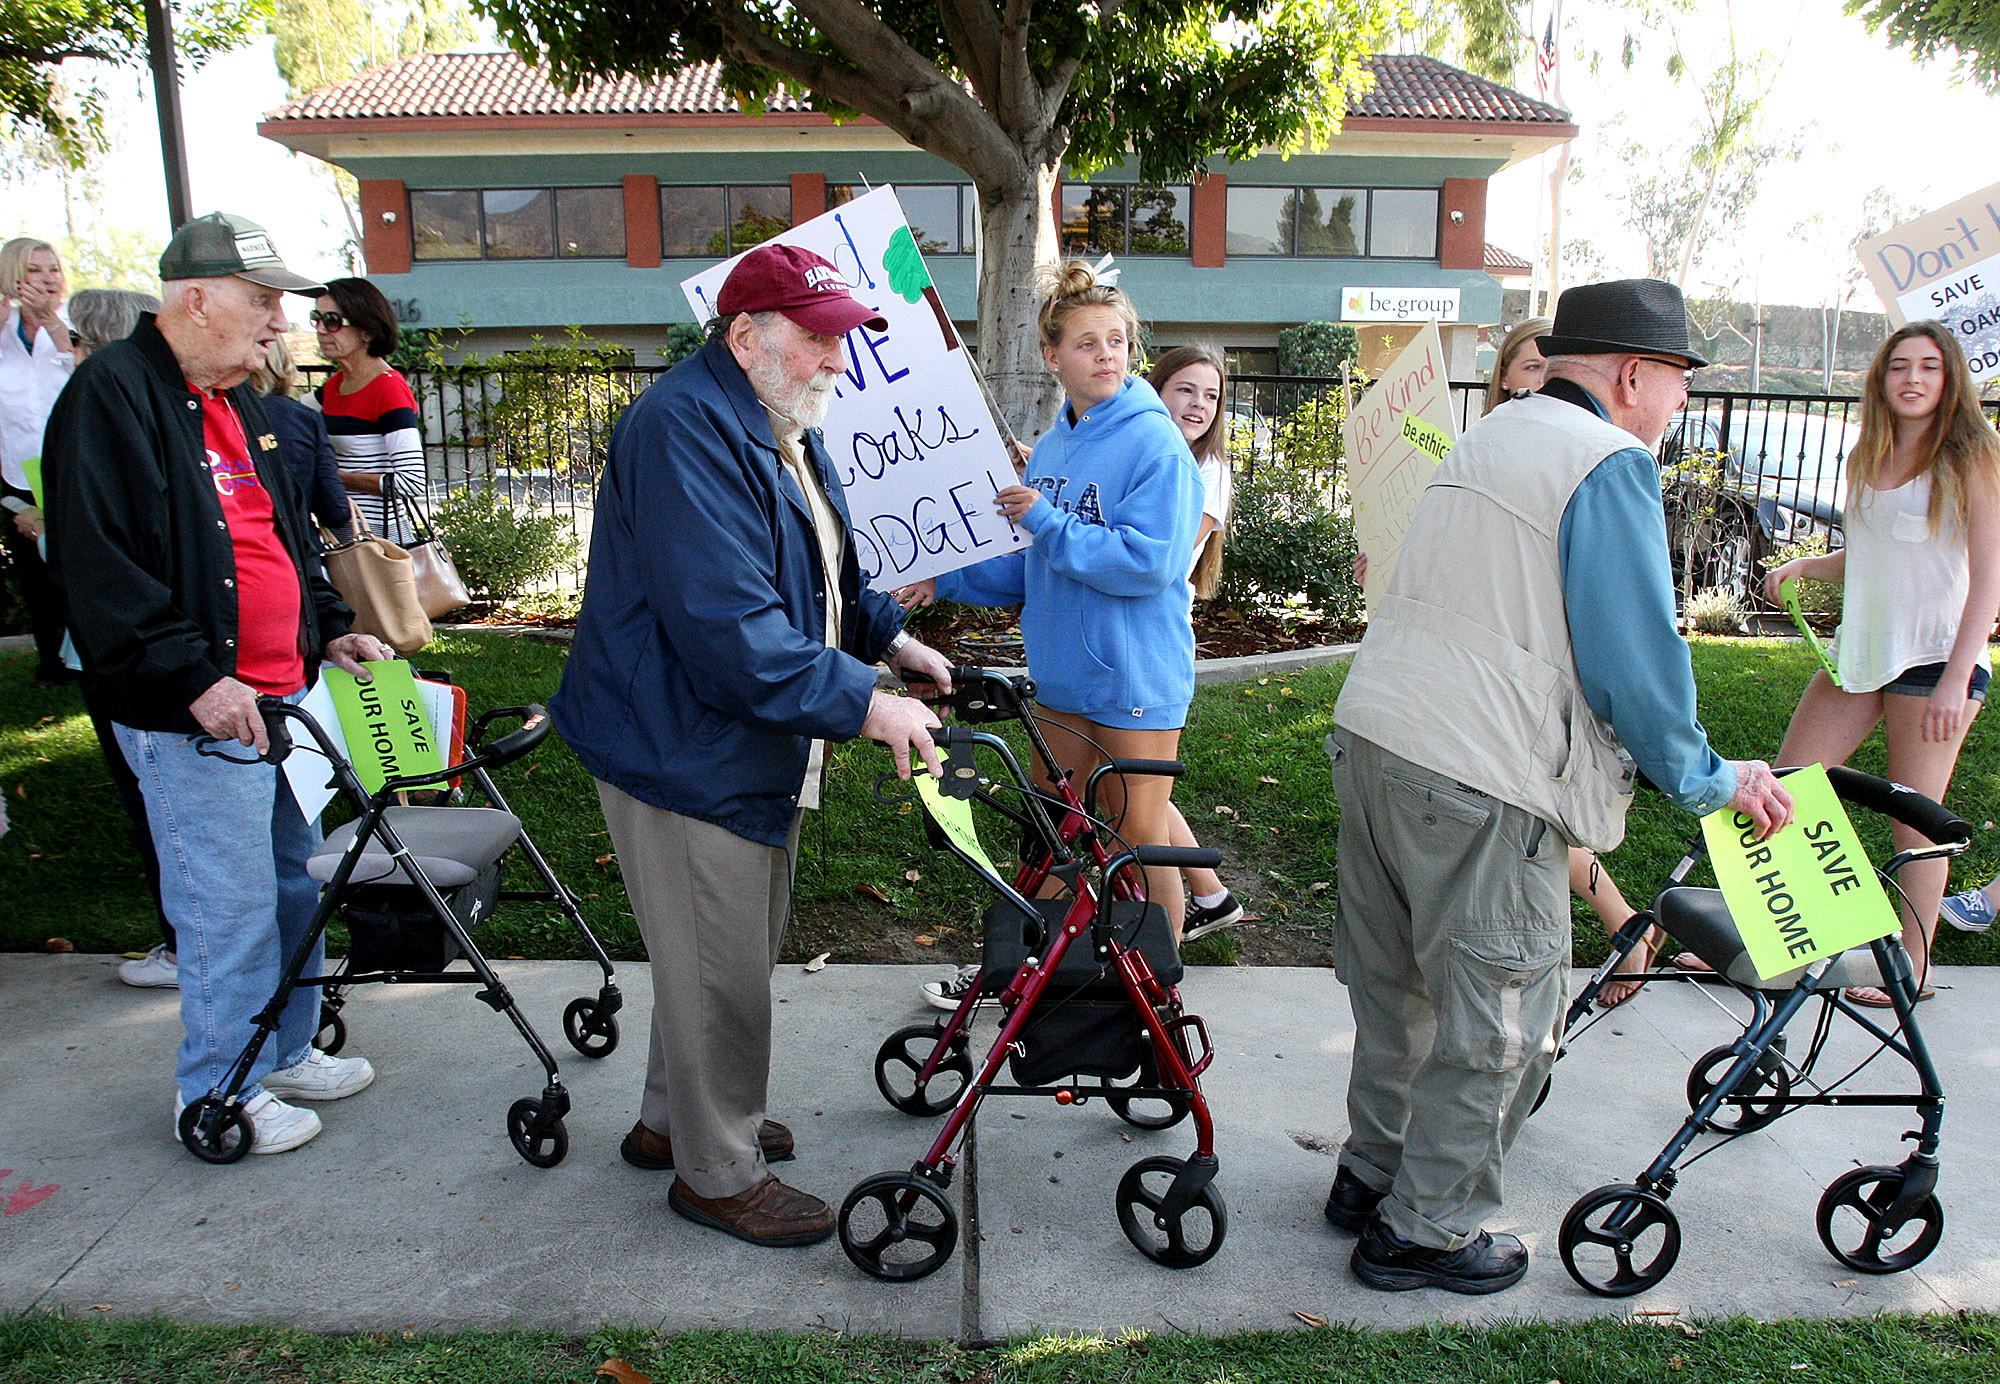 Twelve Oaks Lodge residents Bill Hughes, 93, John Meilan, 90, and Jim Davidson, 91, march in front of the be.group in Glendale, protesting the company's closing of their La Crescenta residence on Wednesday, October 2, 2013. The company recently responded to a lawsuit filed by the Glendale chapter of the National Charity League.